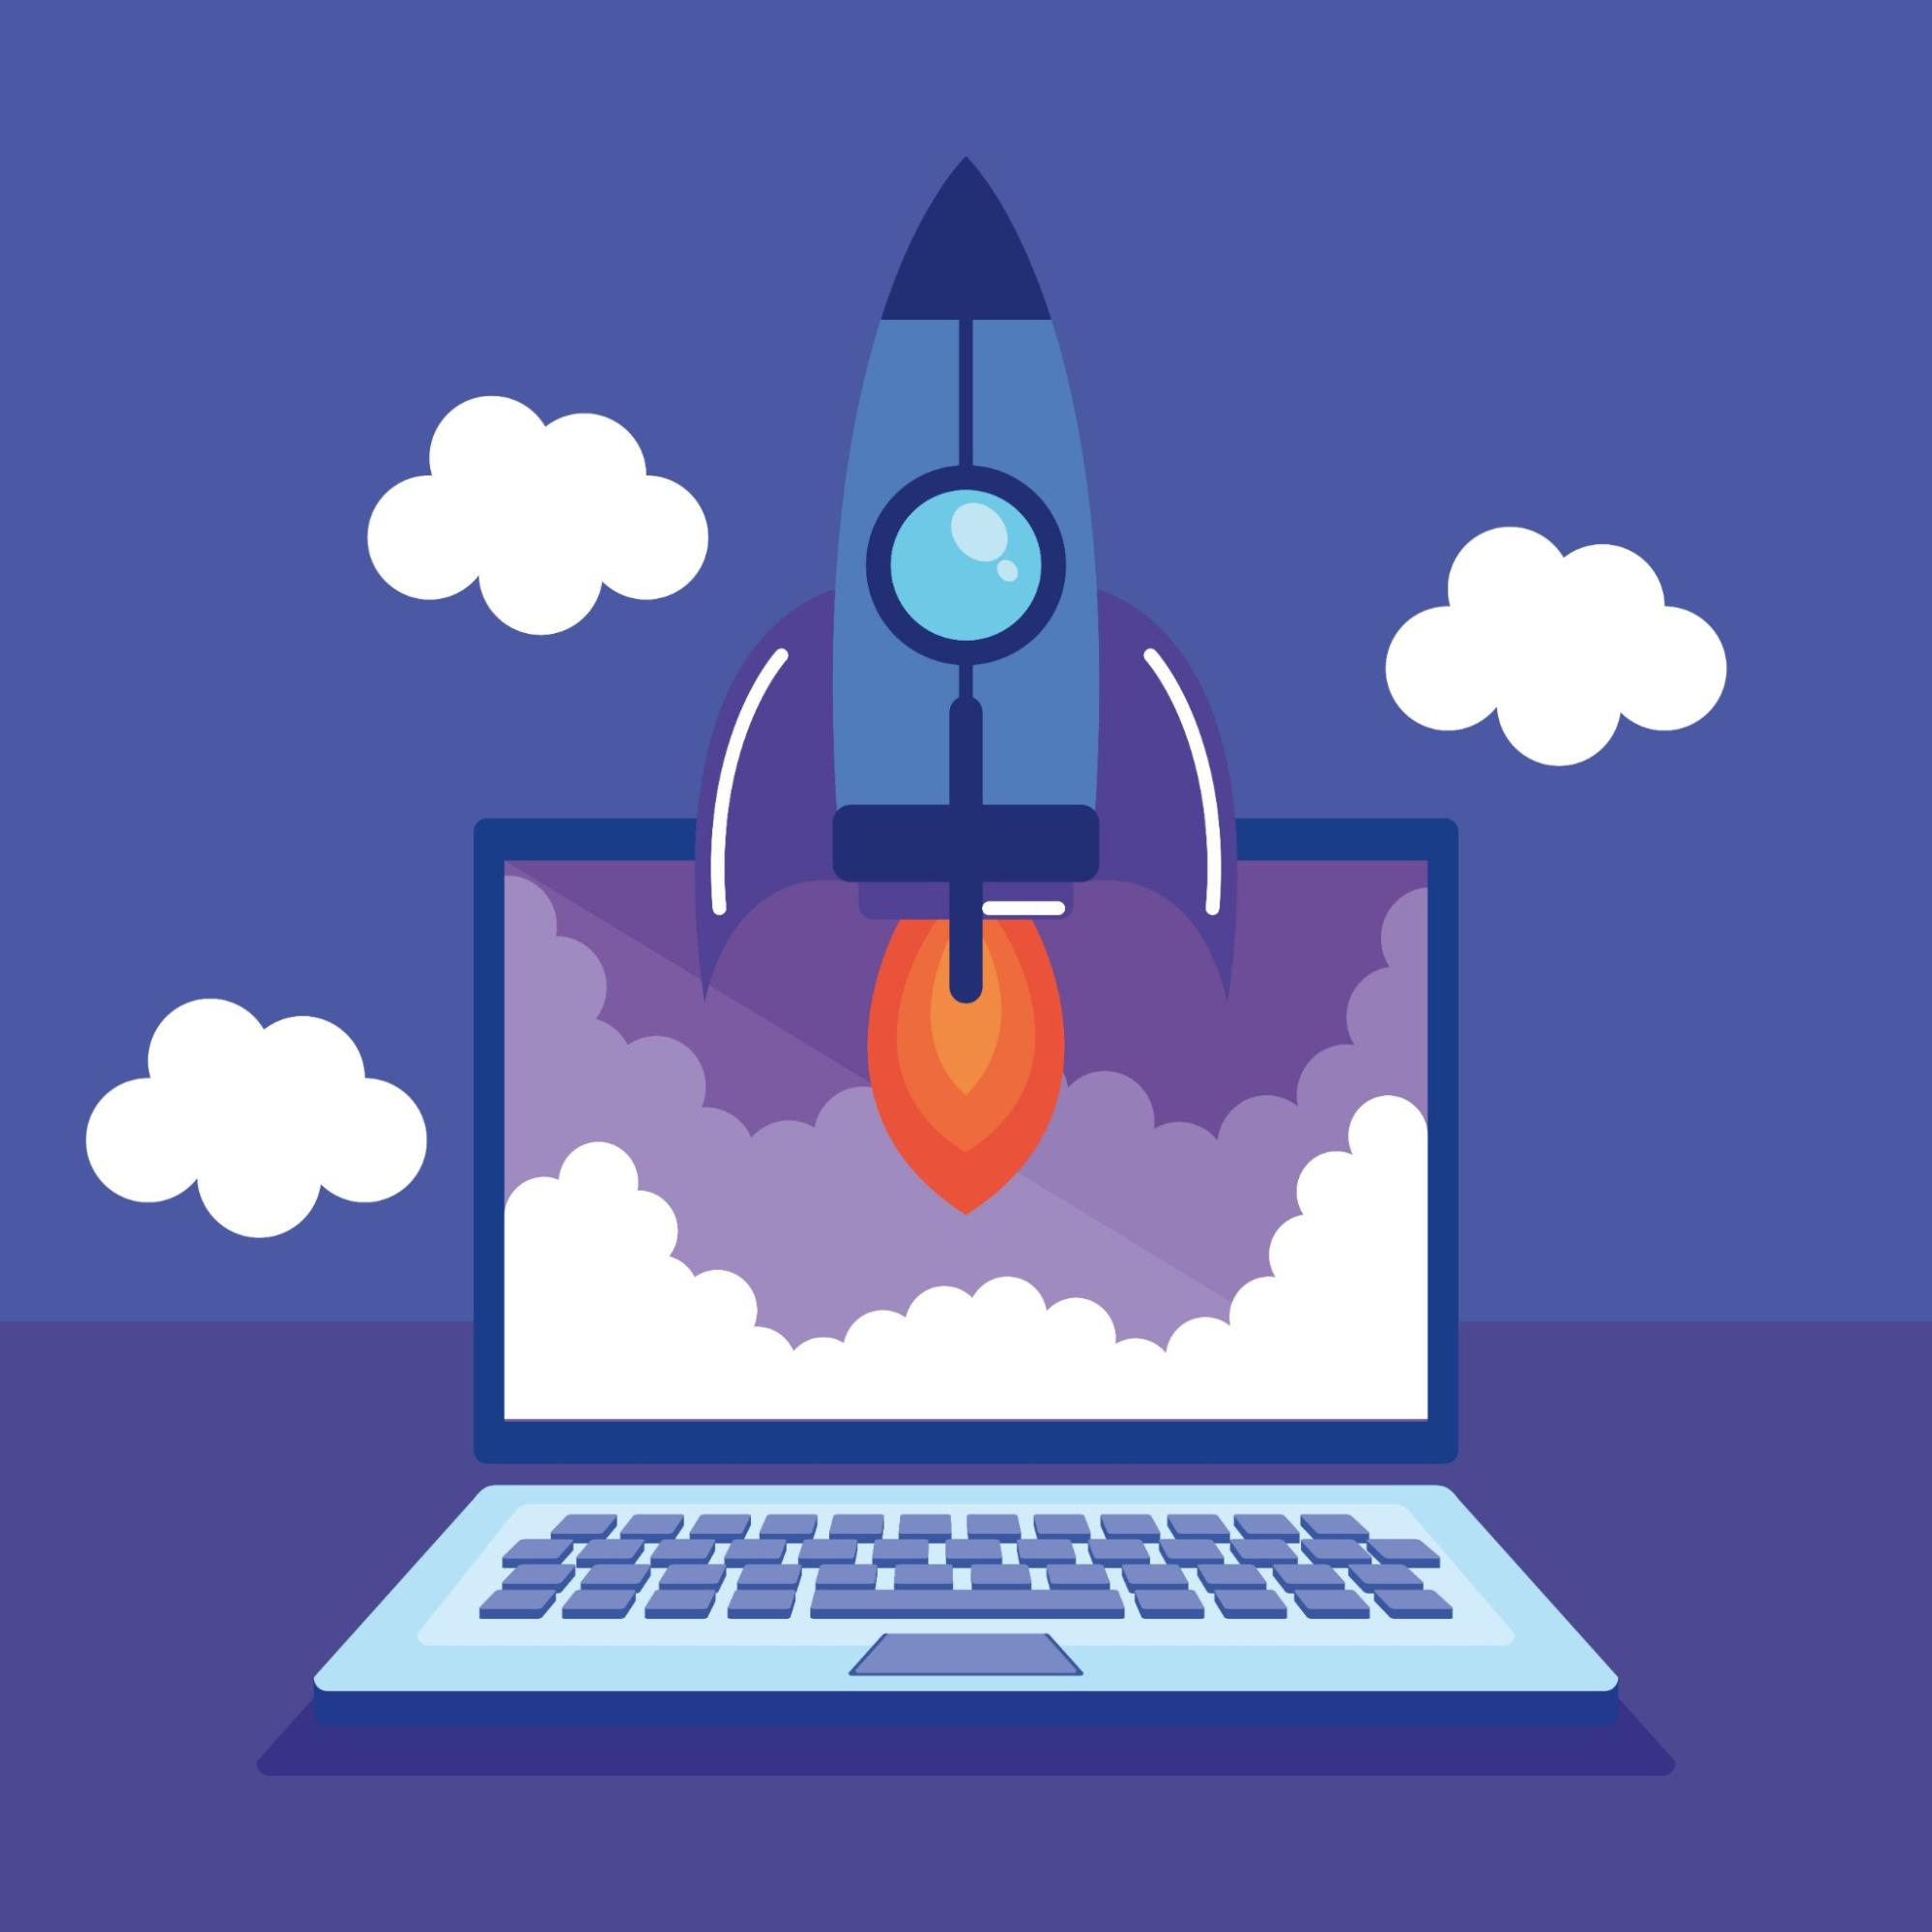 rocket-launching-from-laptop-vector